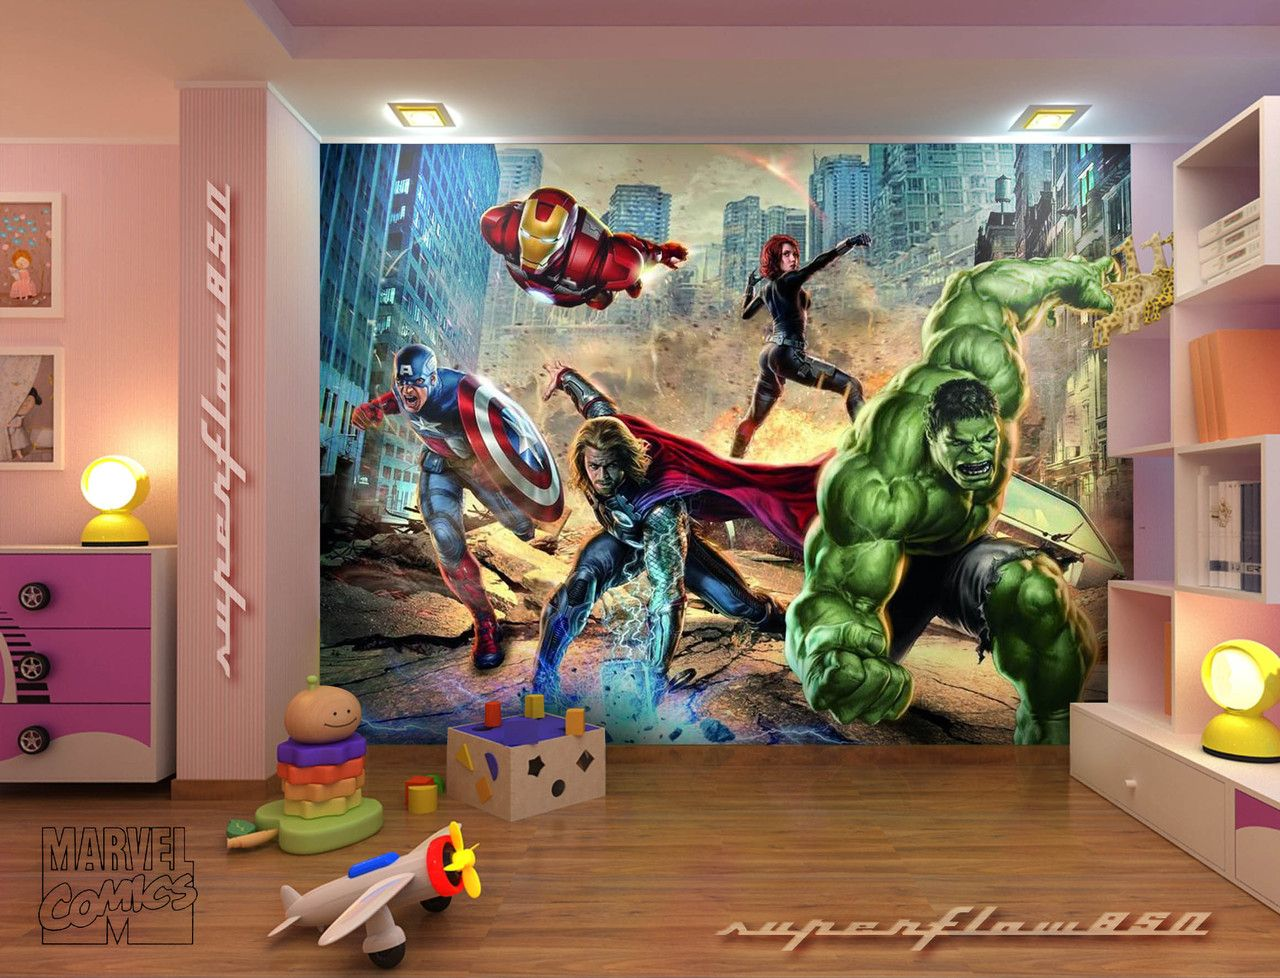 Avengers mural Wallpaper for childrens room